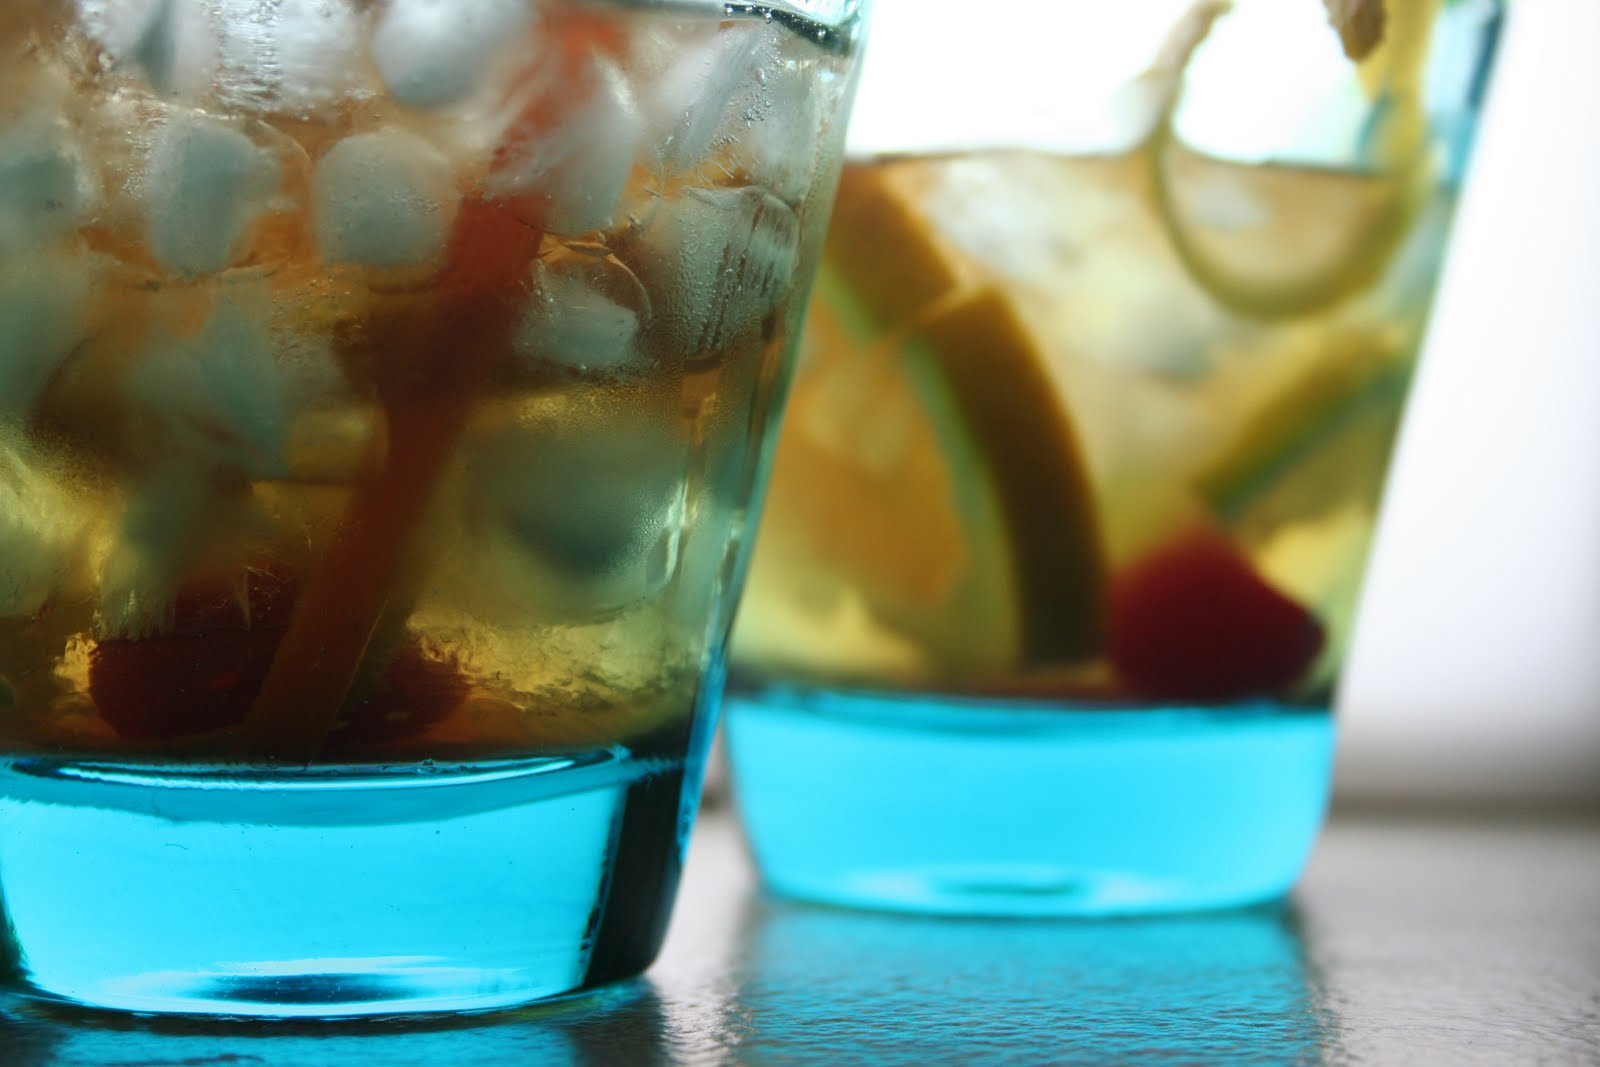 Bar drinks though recipes vary widely from bartender to bartender